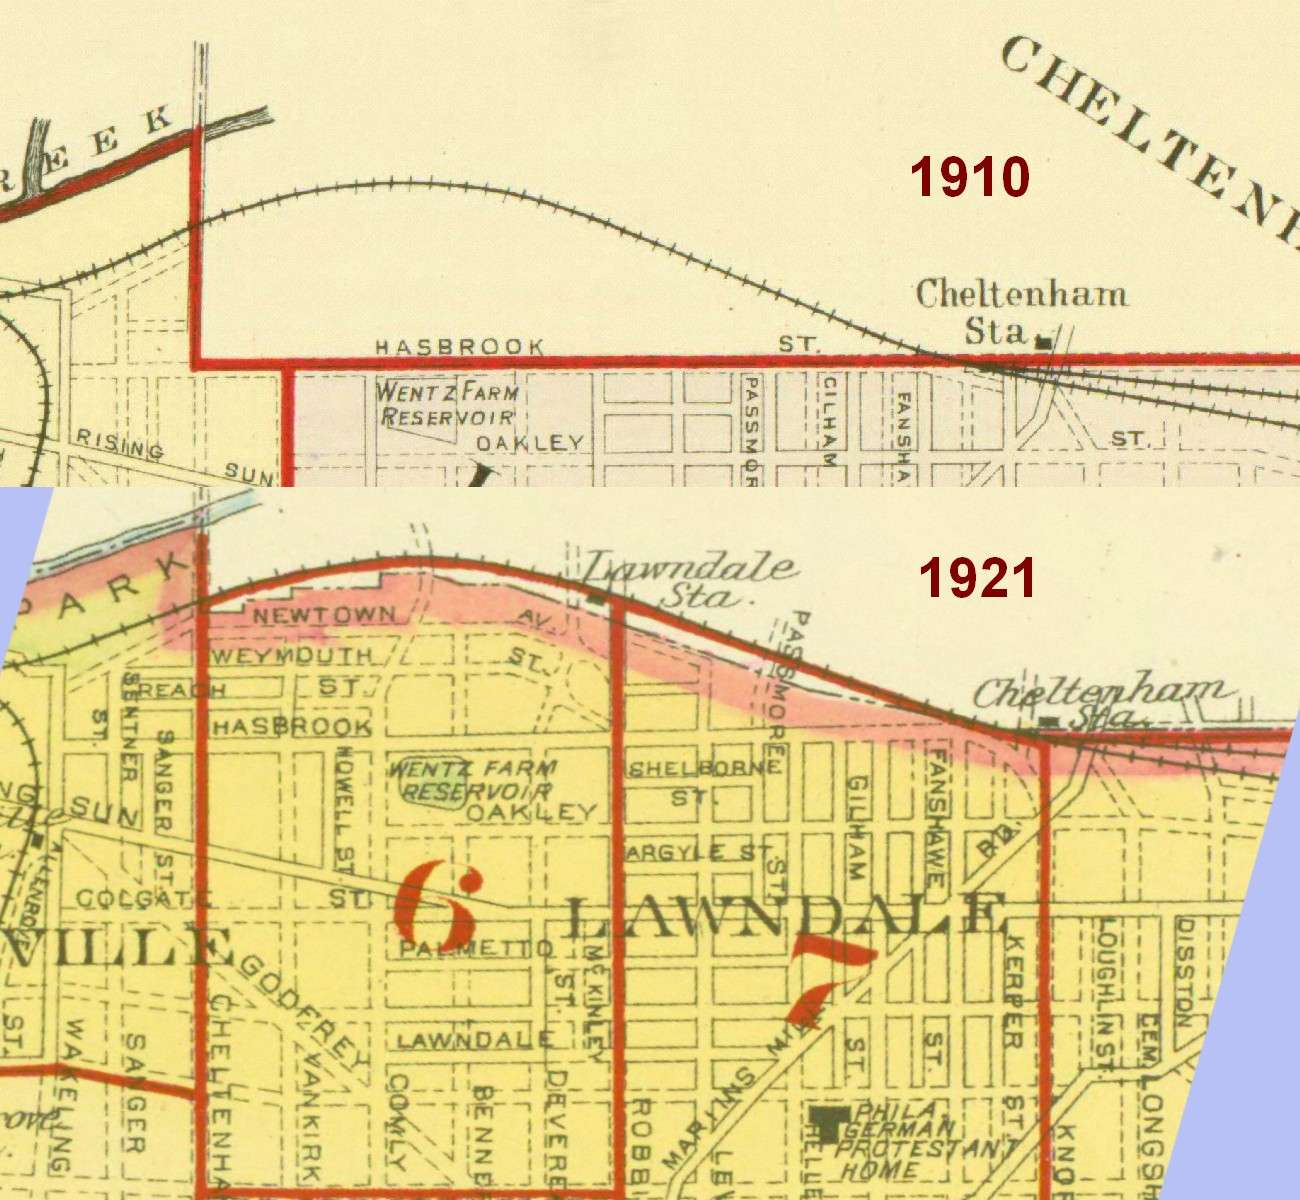 Details of 1910 Smith Map & 1921 Bromley Map